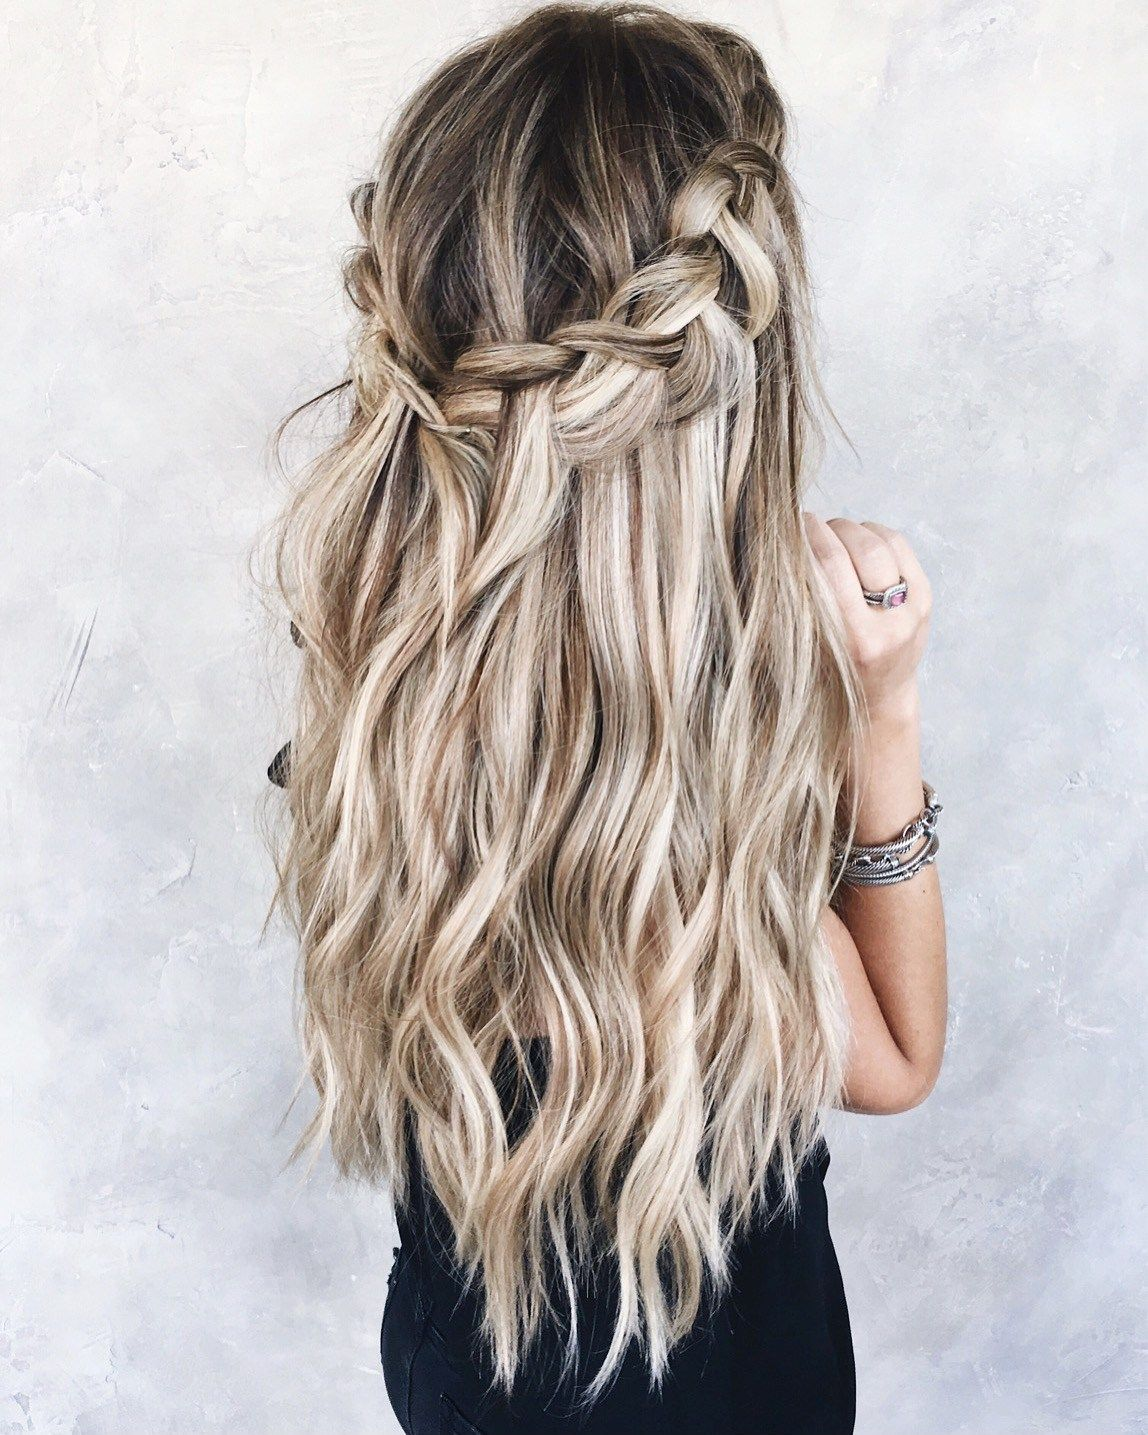 EVERYTHING TO KNOW ABOUT HABIT HAND-TIED HAIR EXTENSIONS - Ashlee Nichols